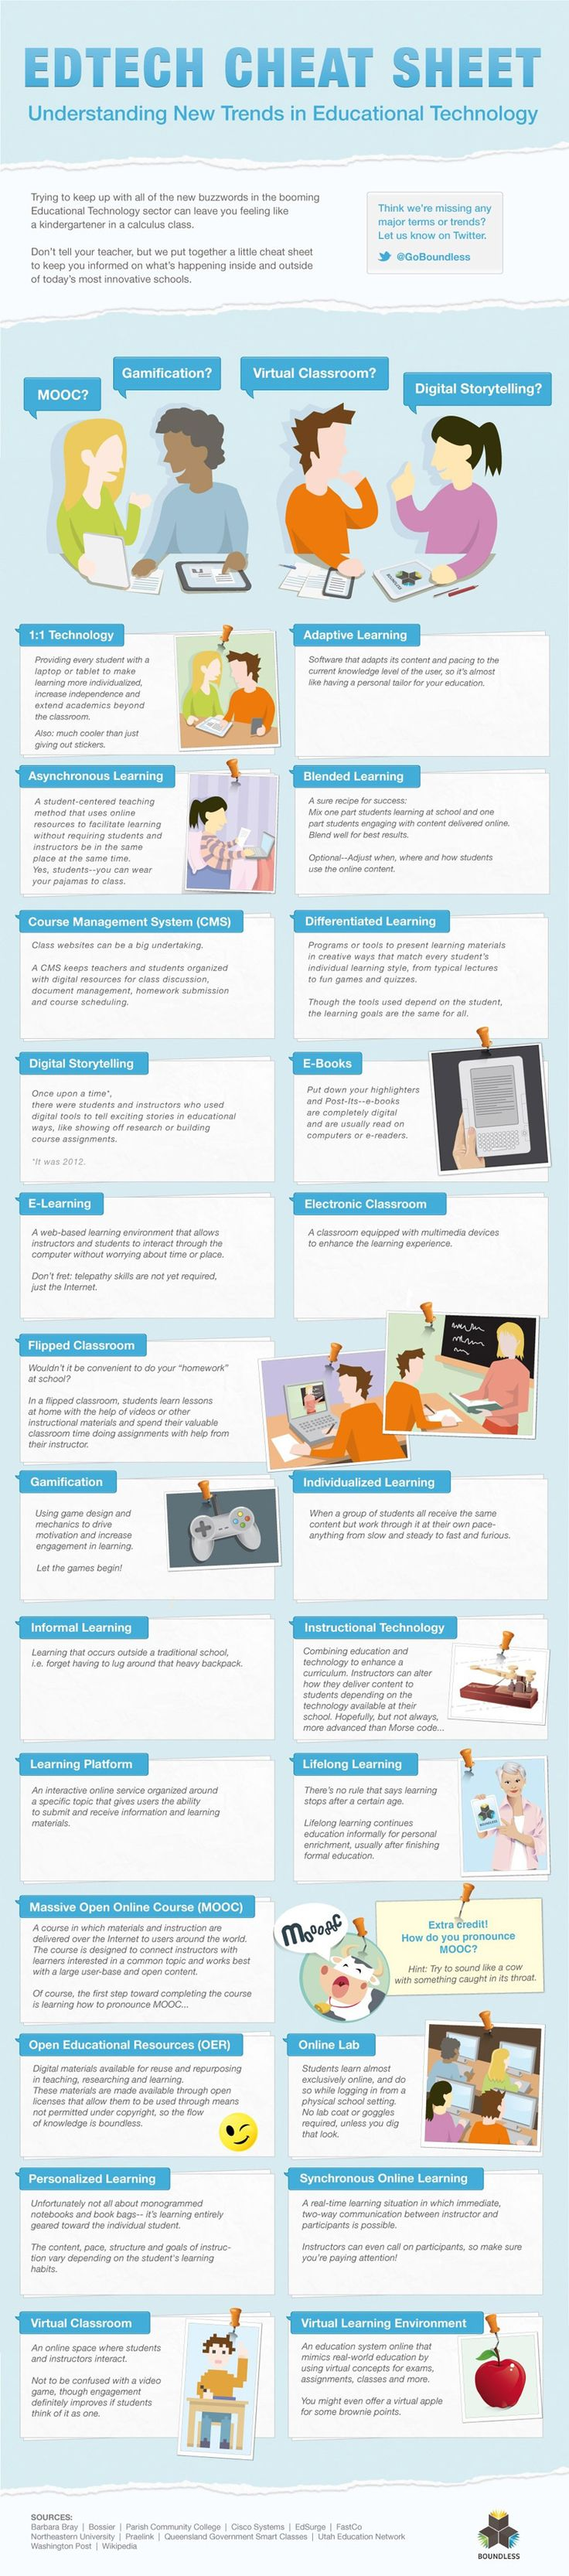 24 Ed-Tech Terms You Should Know. #Infographic #edtech #education #eLearning #mLearning